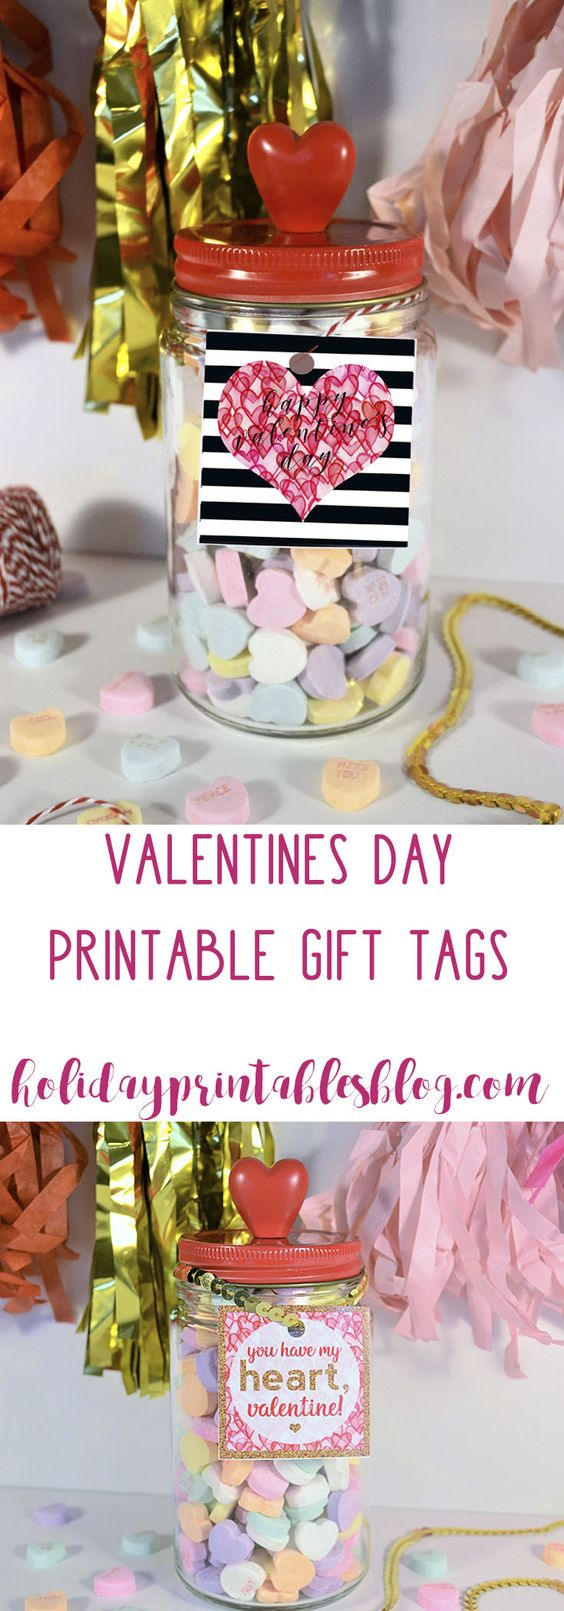 Valentine's Day Free Printable Gift Tags | Teacher Gift Idea | Printable Valentines Tags | Holiday Printables: